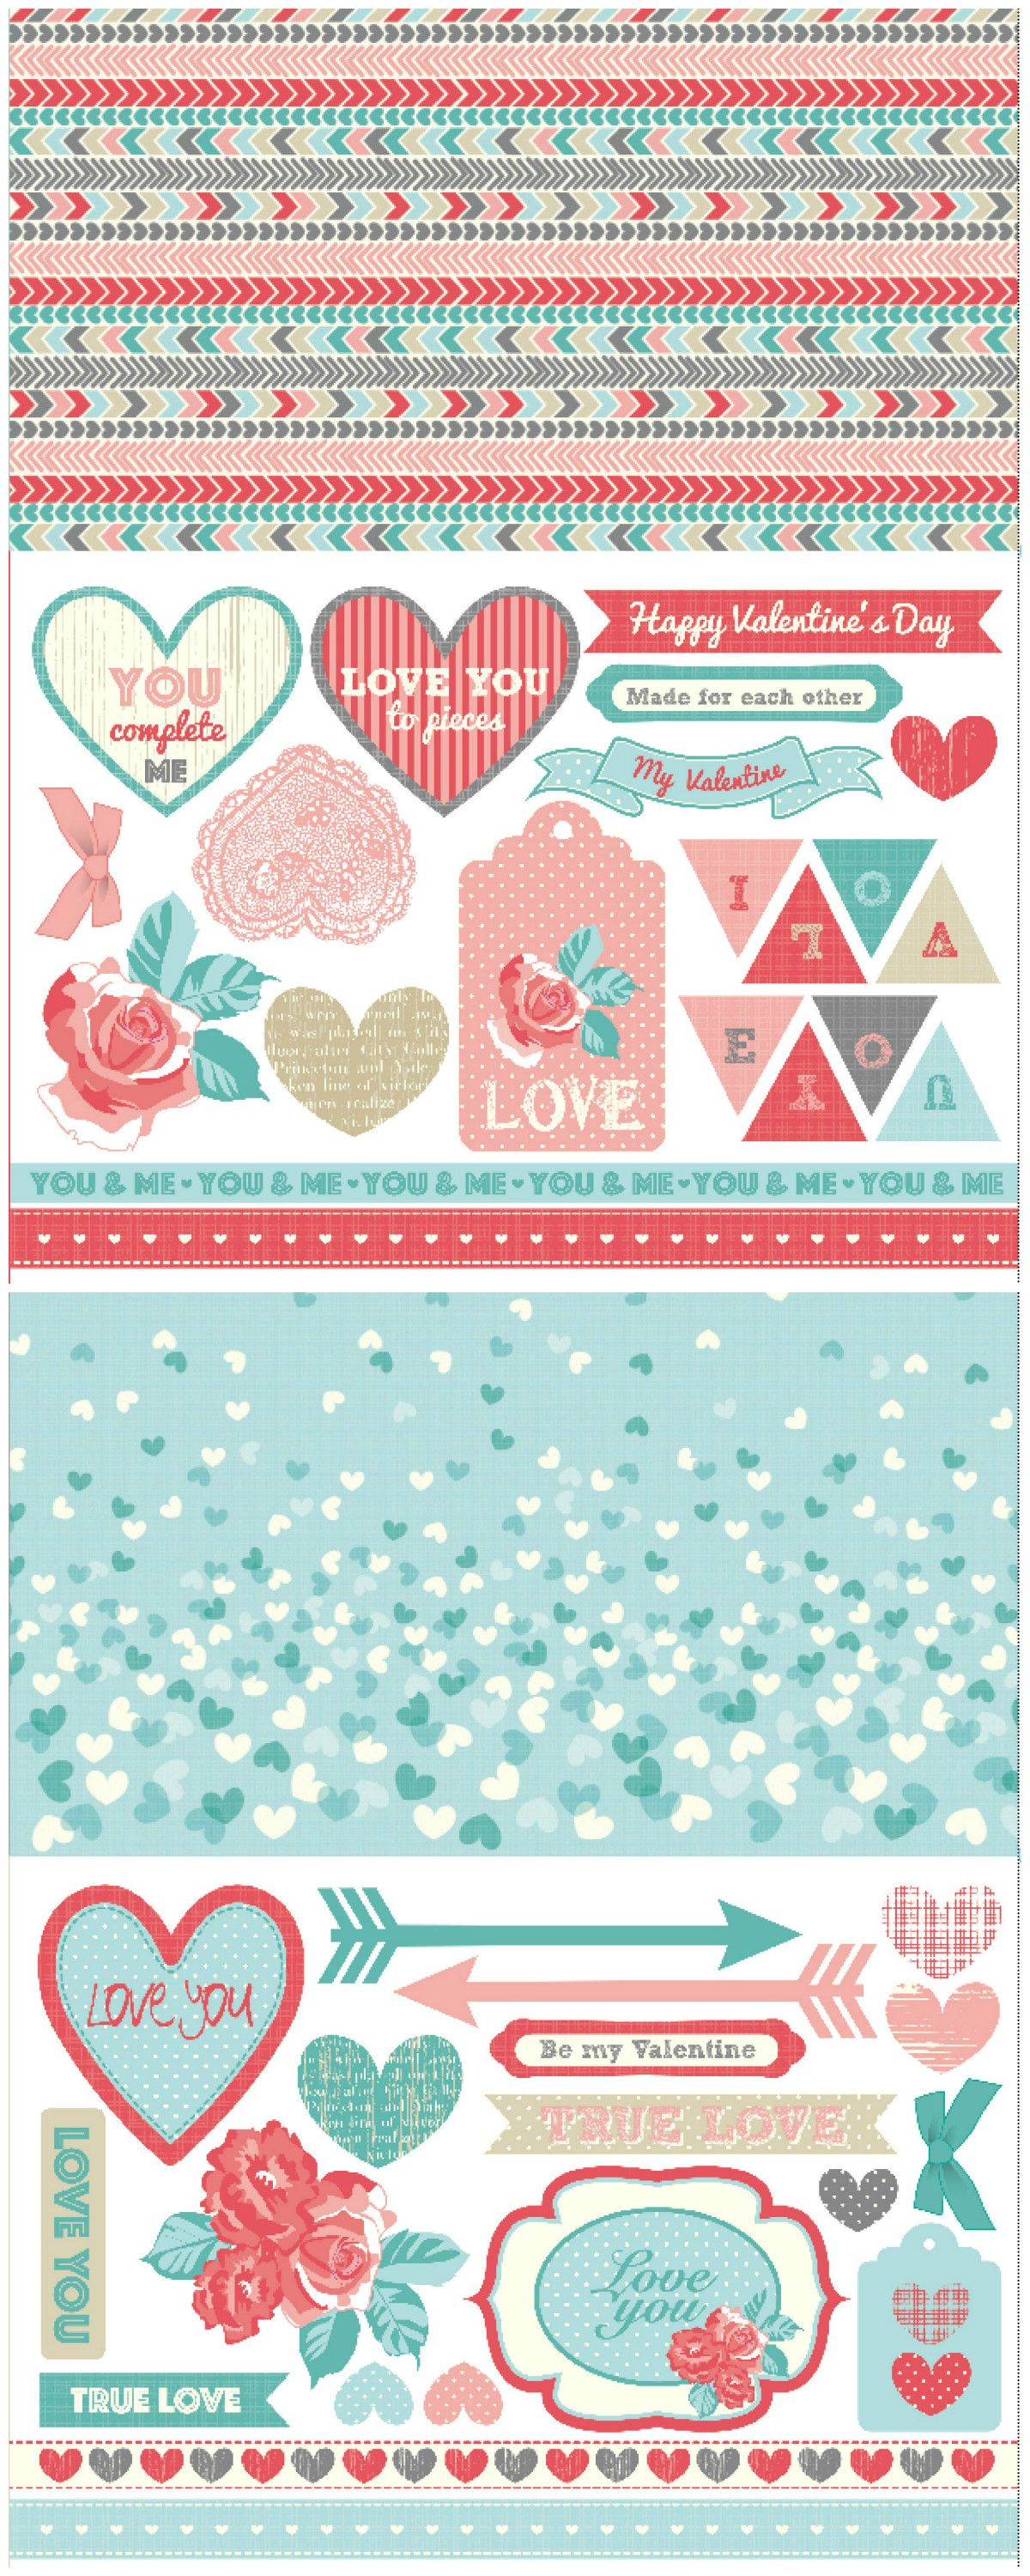 Free Card Making Ideas And Printables Part - 37: Valentineu0027s Day Free Printable Papers - Download Them For Card Making And  Scrapbooking!